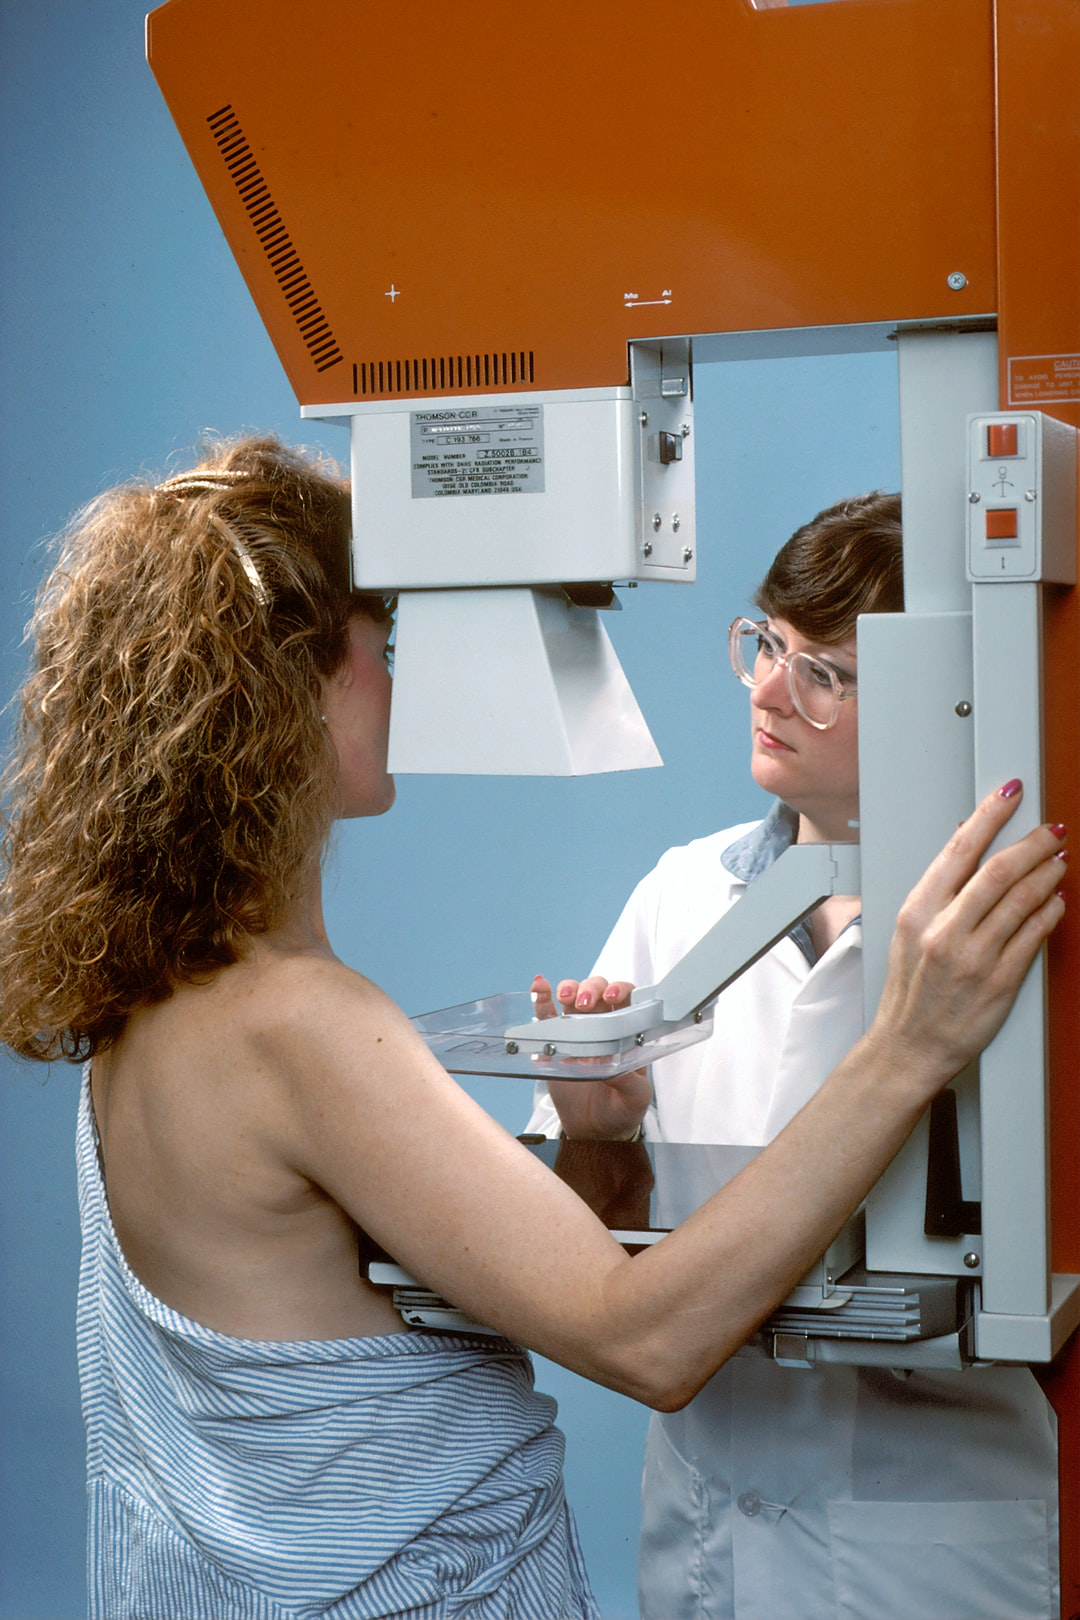 Mammography Technologist License Renewal: What You Need to Know